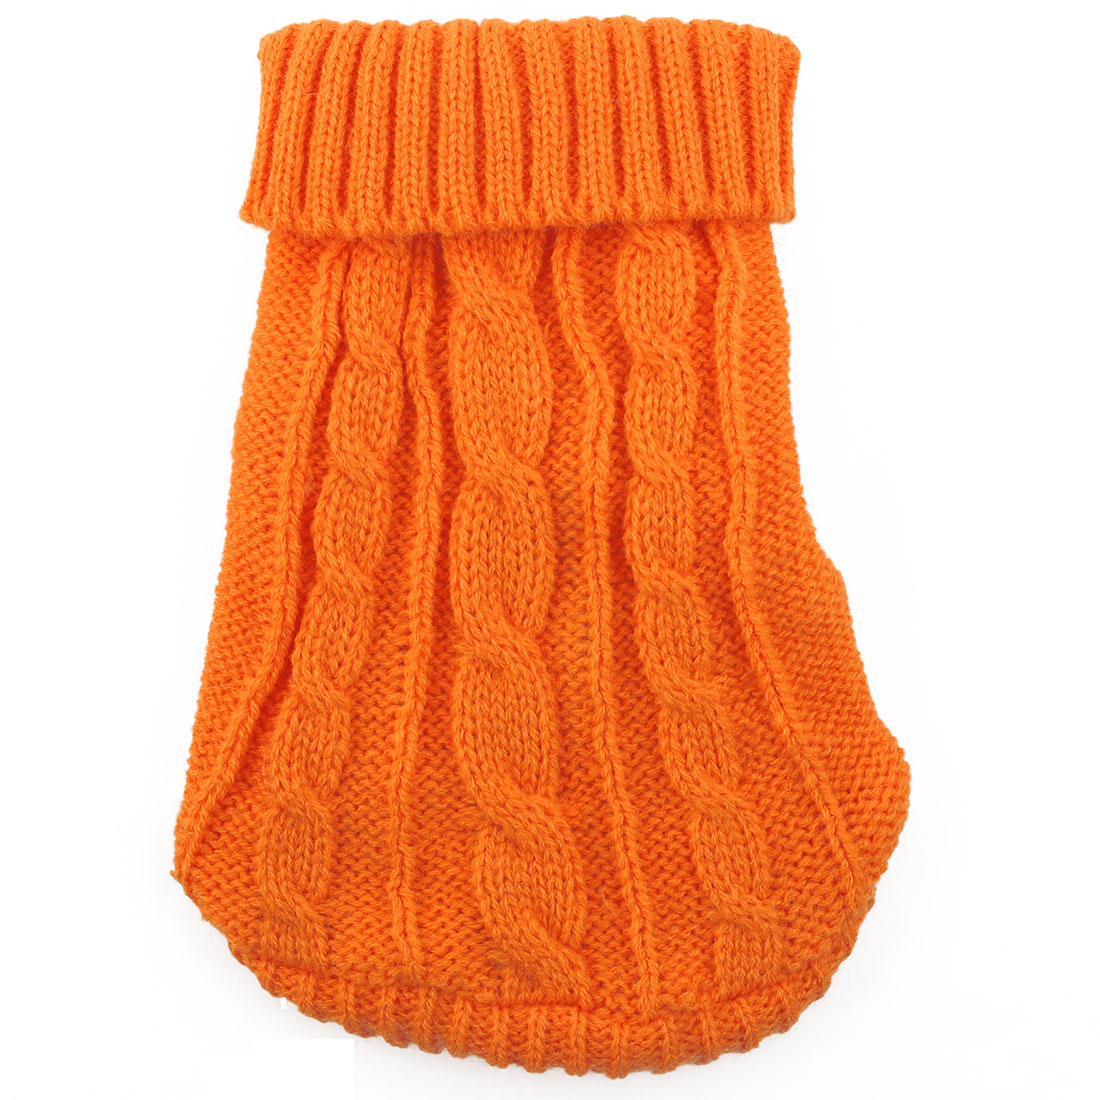 Pet Cat Woolen Grid Pattern Knitted Winter Warm Sweater Coat Clothes Apparel Costume Orange M